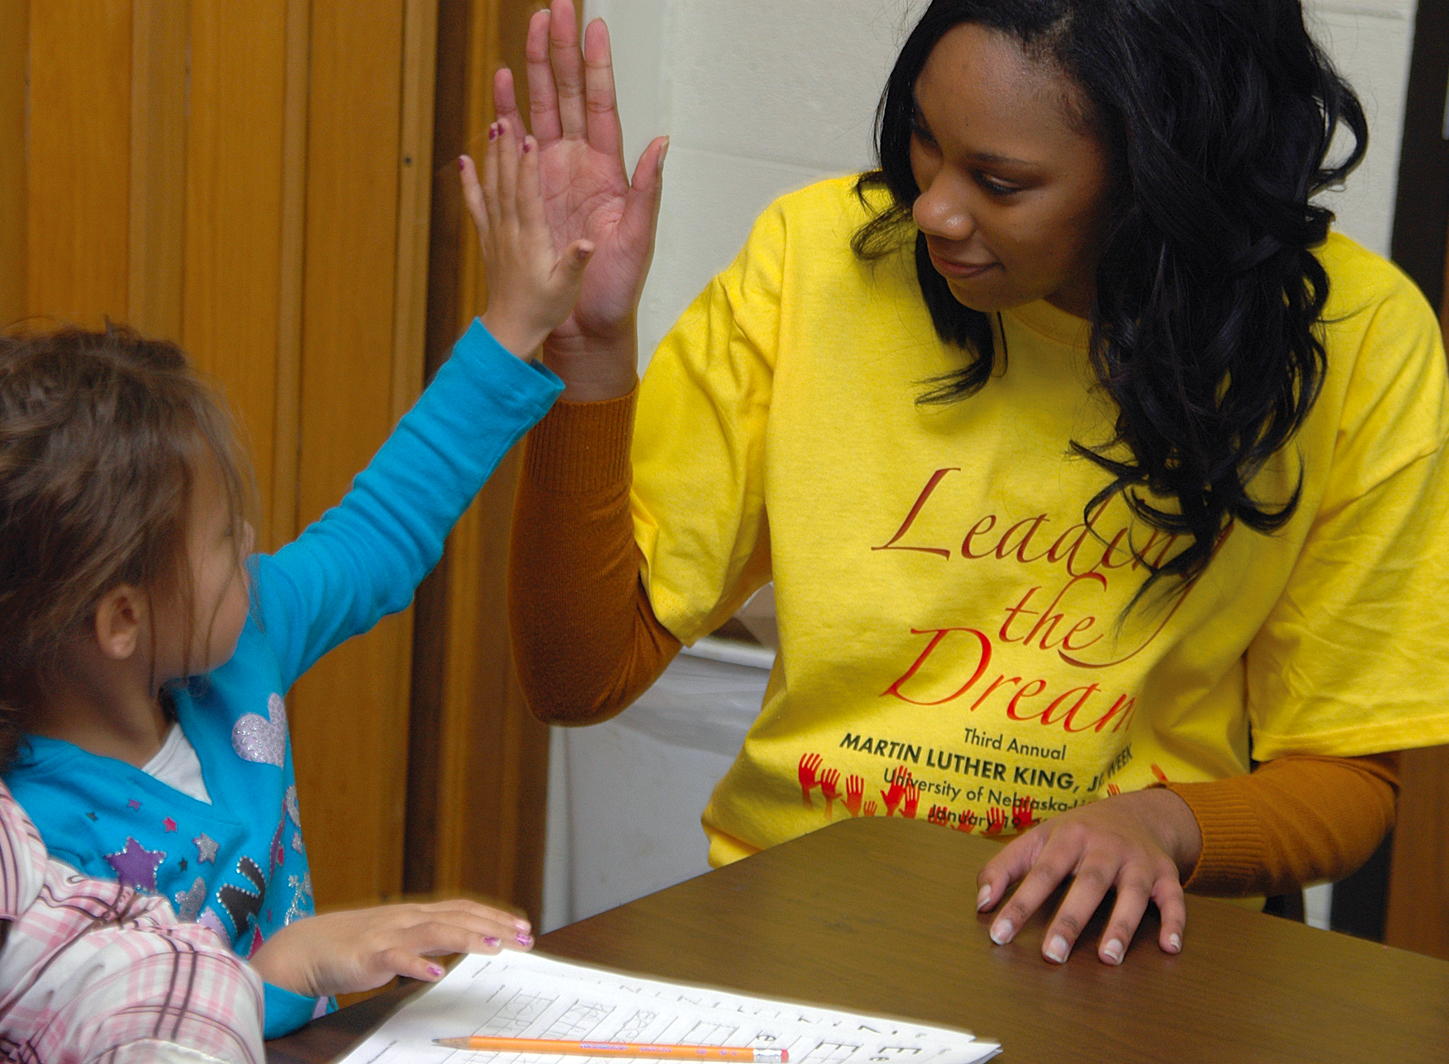 UNL student Rhaniece Choice offers a high five to an elementary school student during an Martin Luther King Jr. outreach event earlier this year.